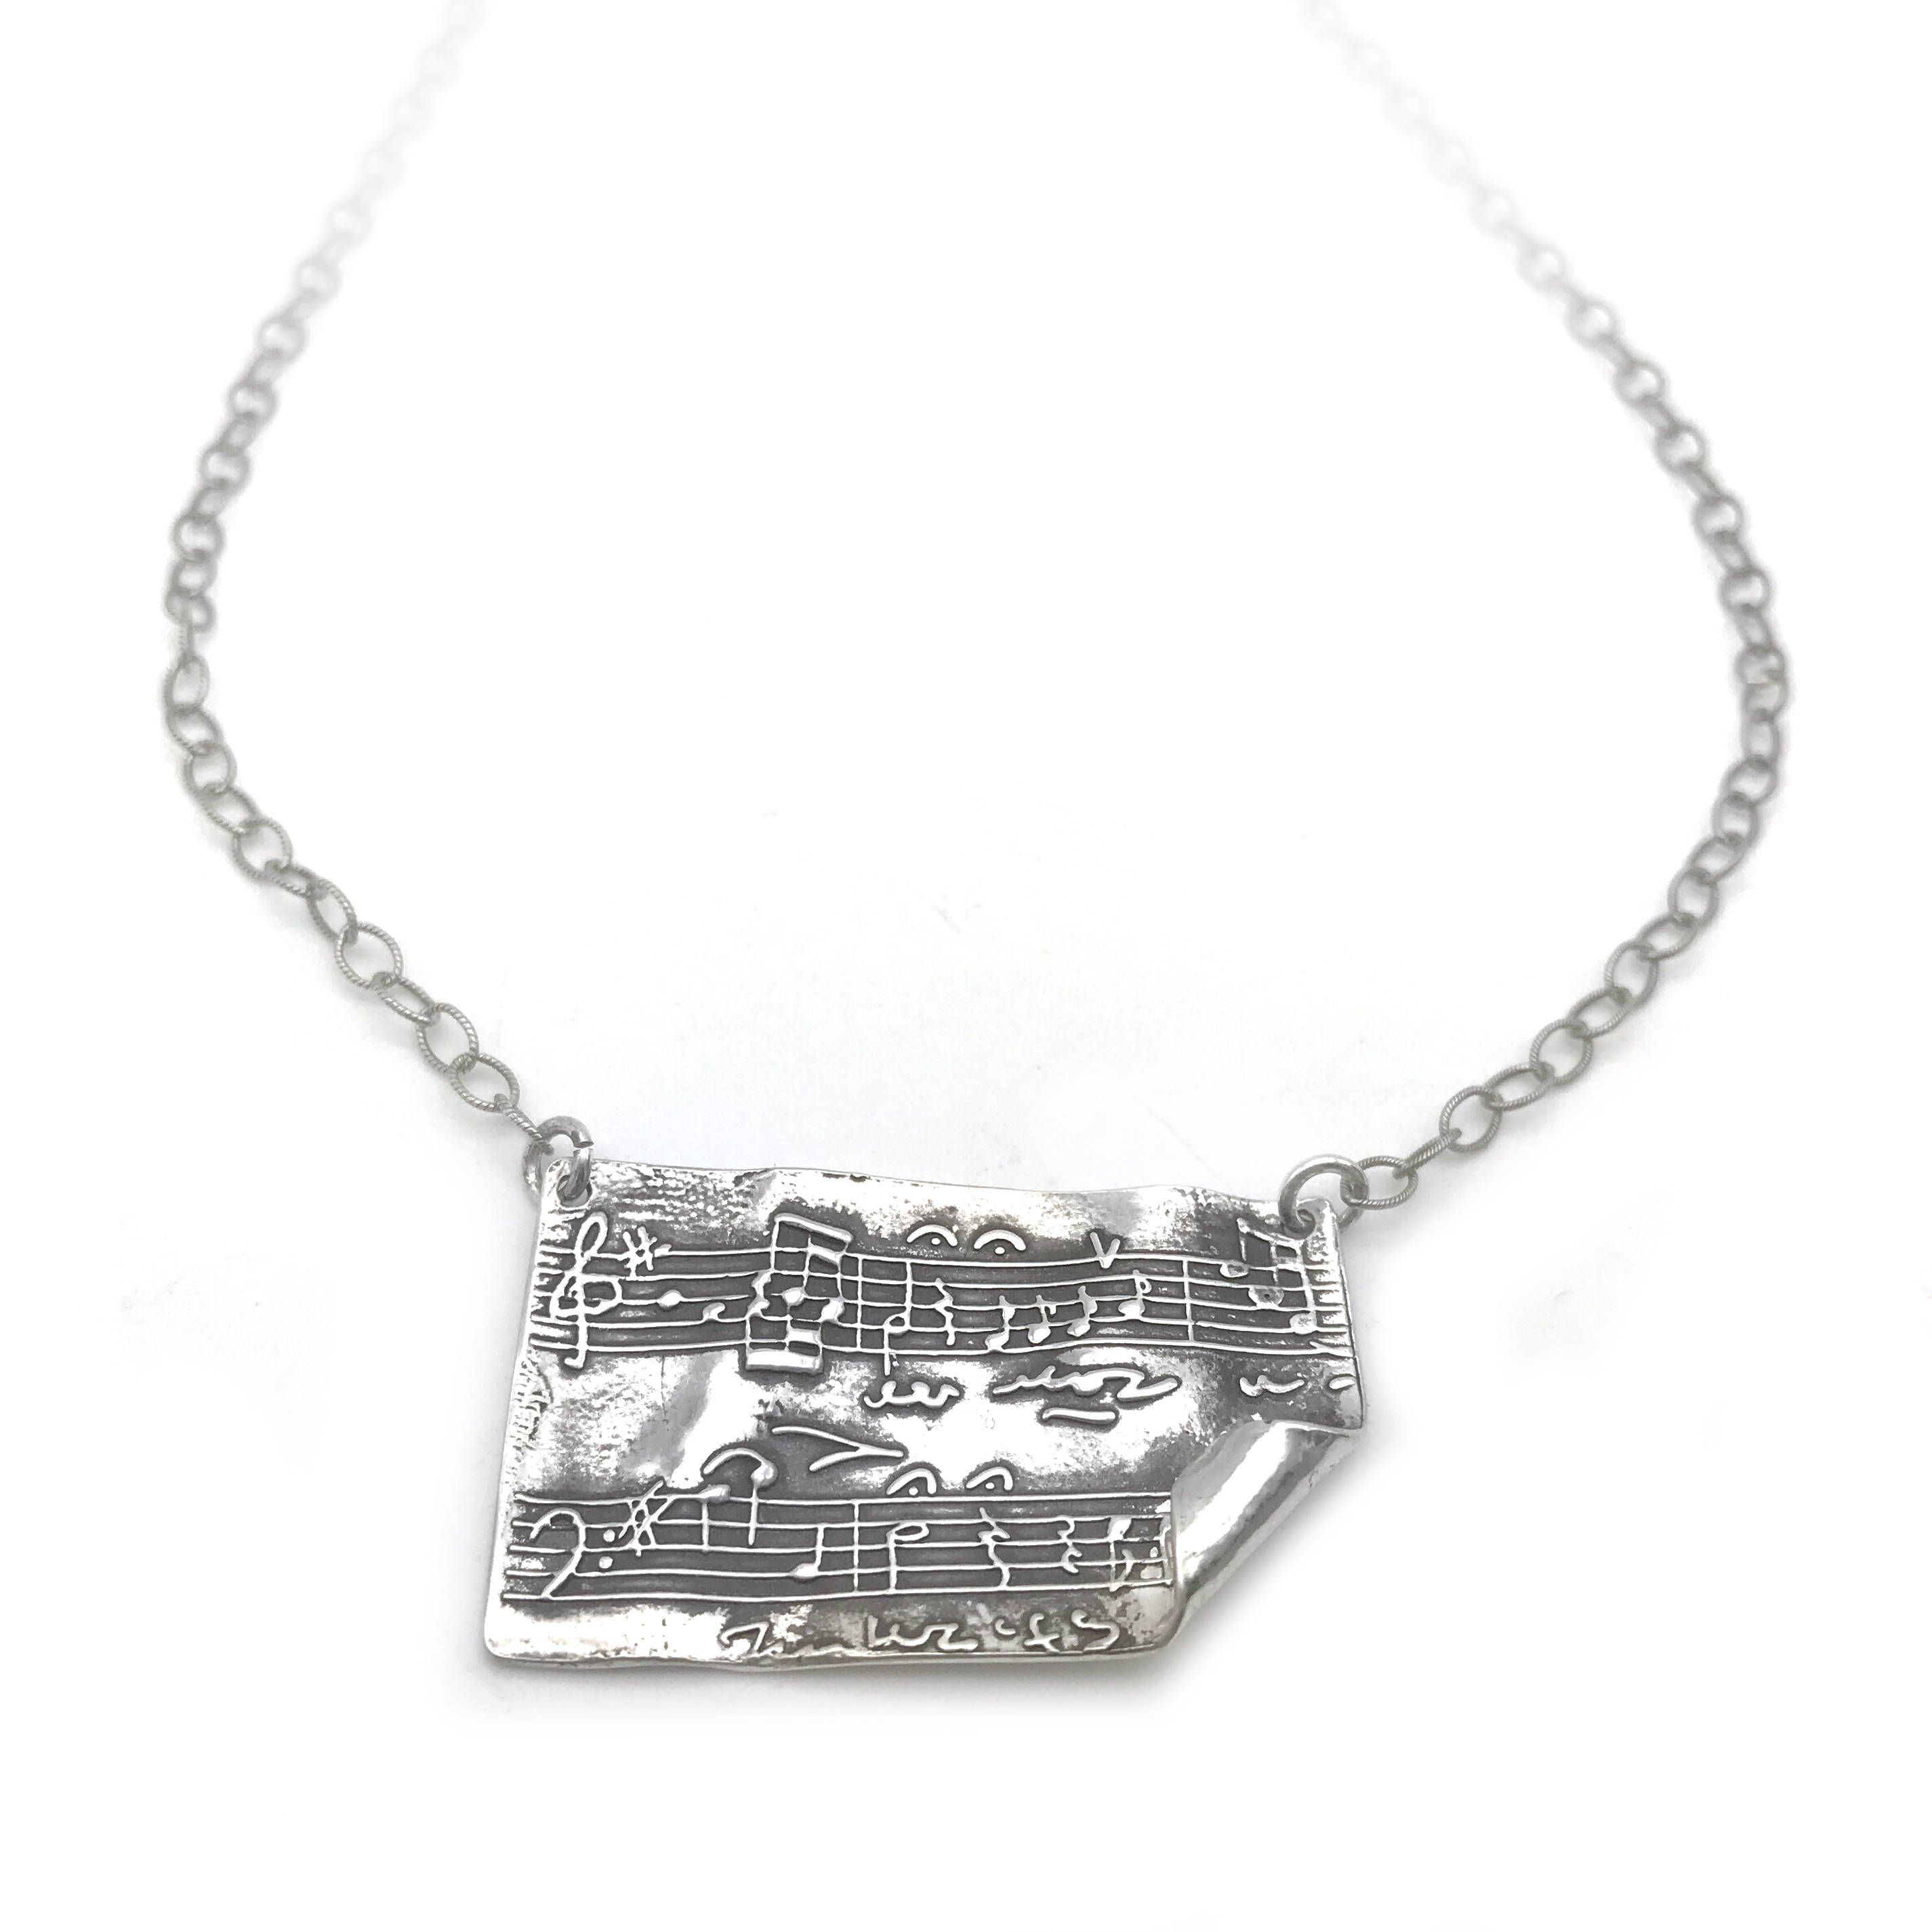 lovers lover and music simplistic unique tape silver much down for necklace plated cassette awesome pretty perfect any pendant antique pin beautiful right